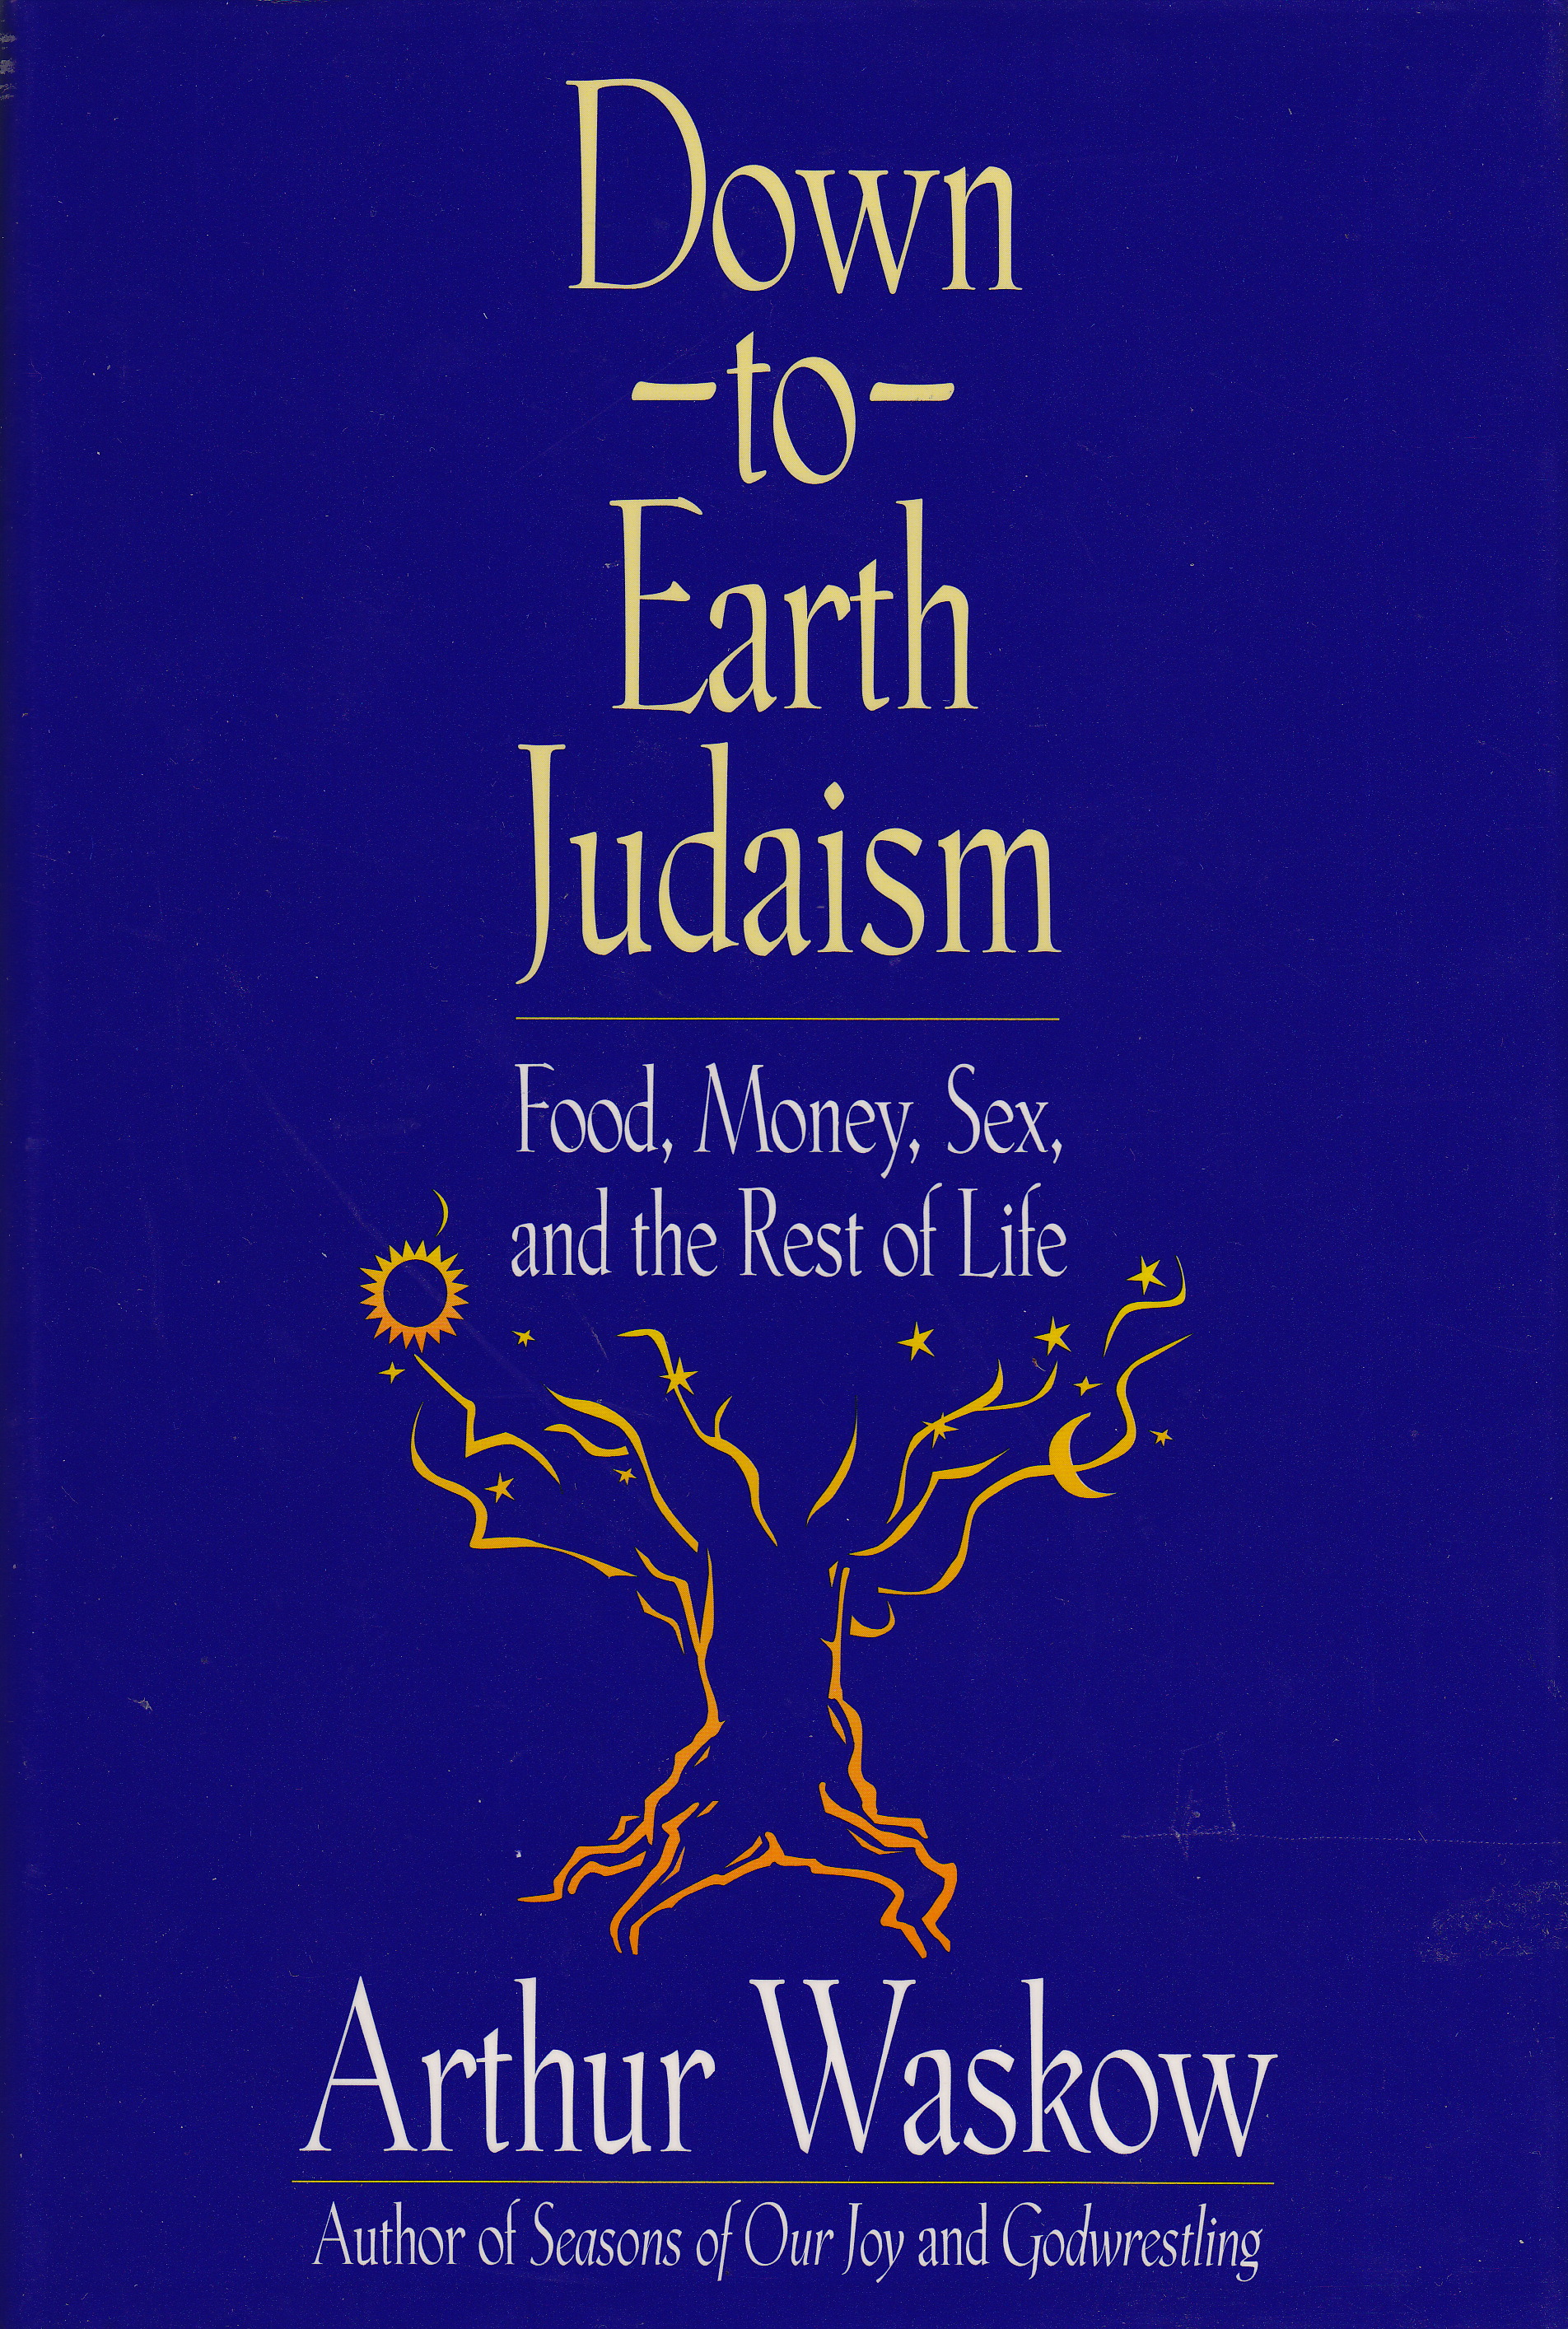 Down to Earth Judaism